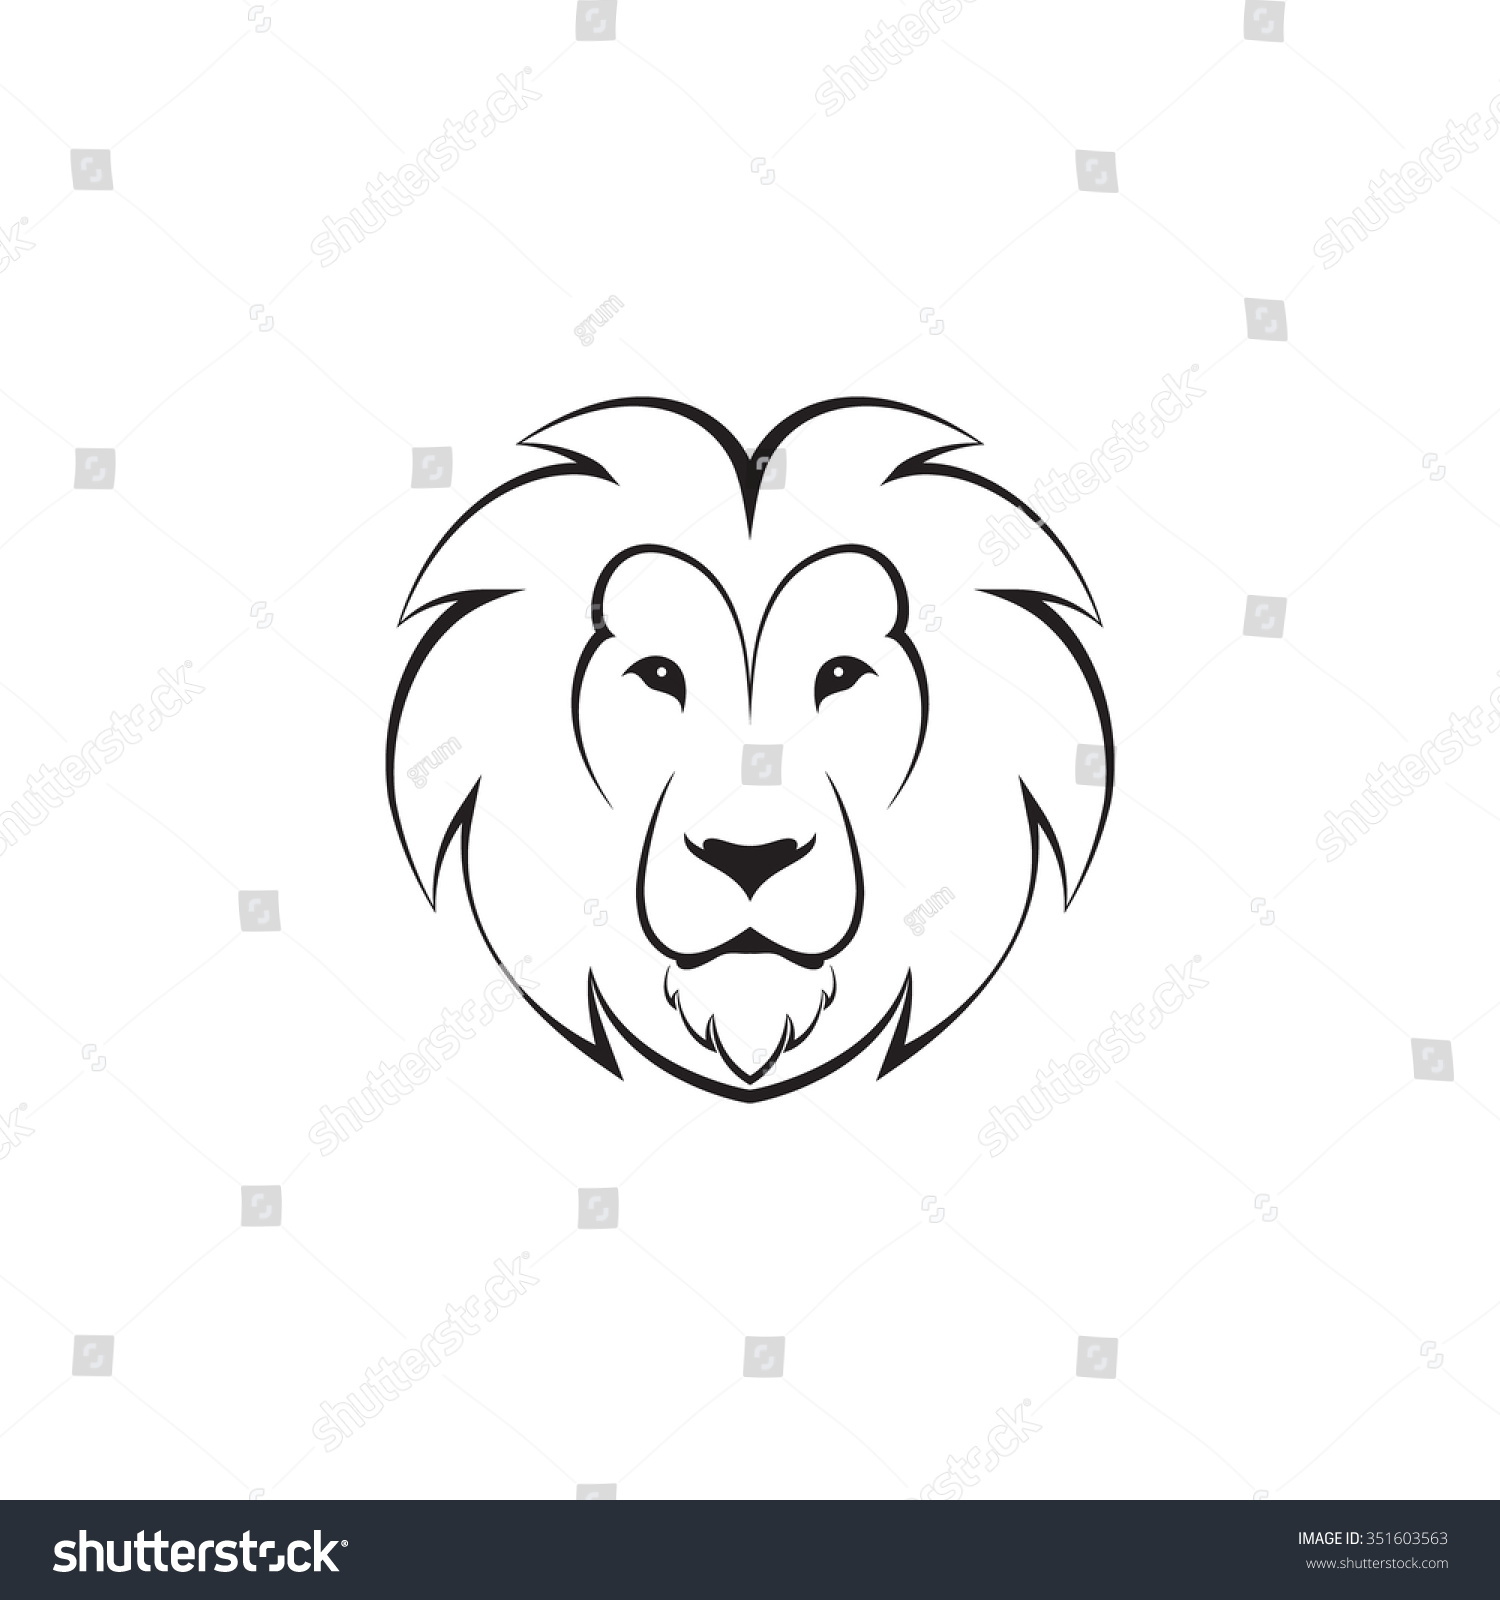 Abstract Round Vector Logo Head Lion Stock Vector Royalty Free 351603563 Realistic tutorial line cartoon outline tattoo texture silhouette geometry minimalist. https www shutterstock com image vector abstract round vector logo head lion 351603563